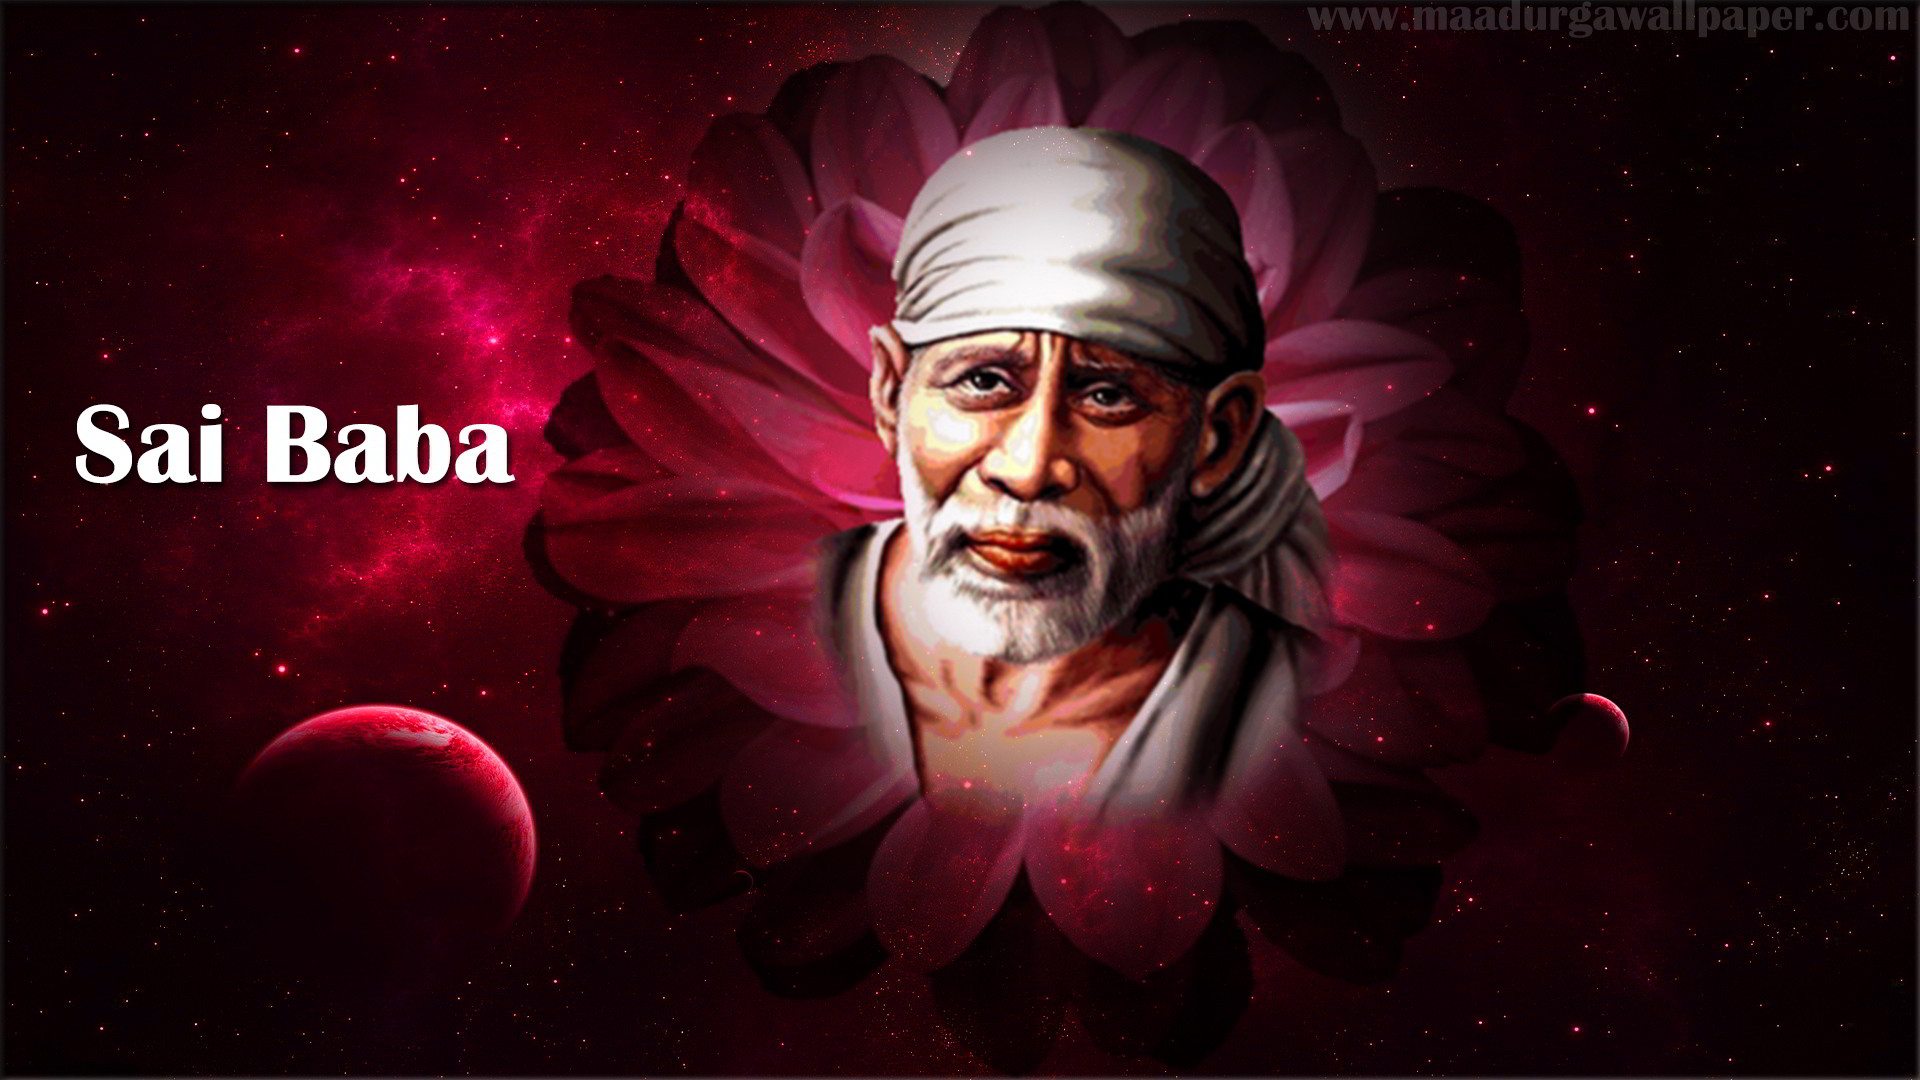 Hindu God Shirdi Saibaba Hd Wallpaper Sai Baba Hd Wallpaper For